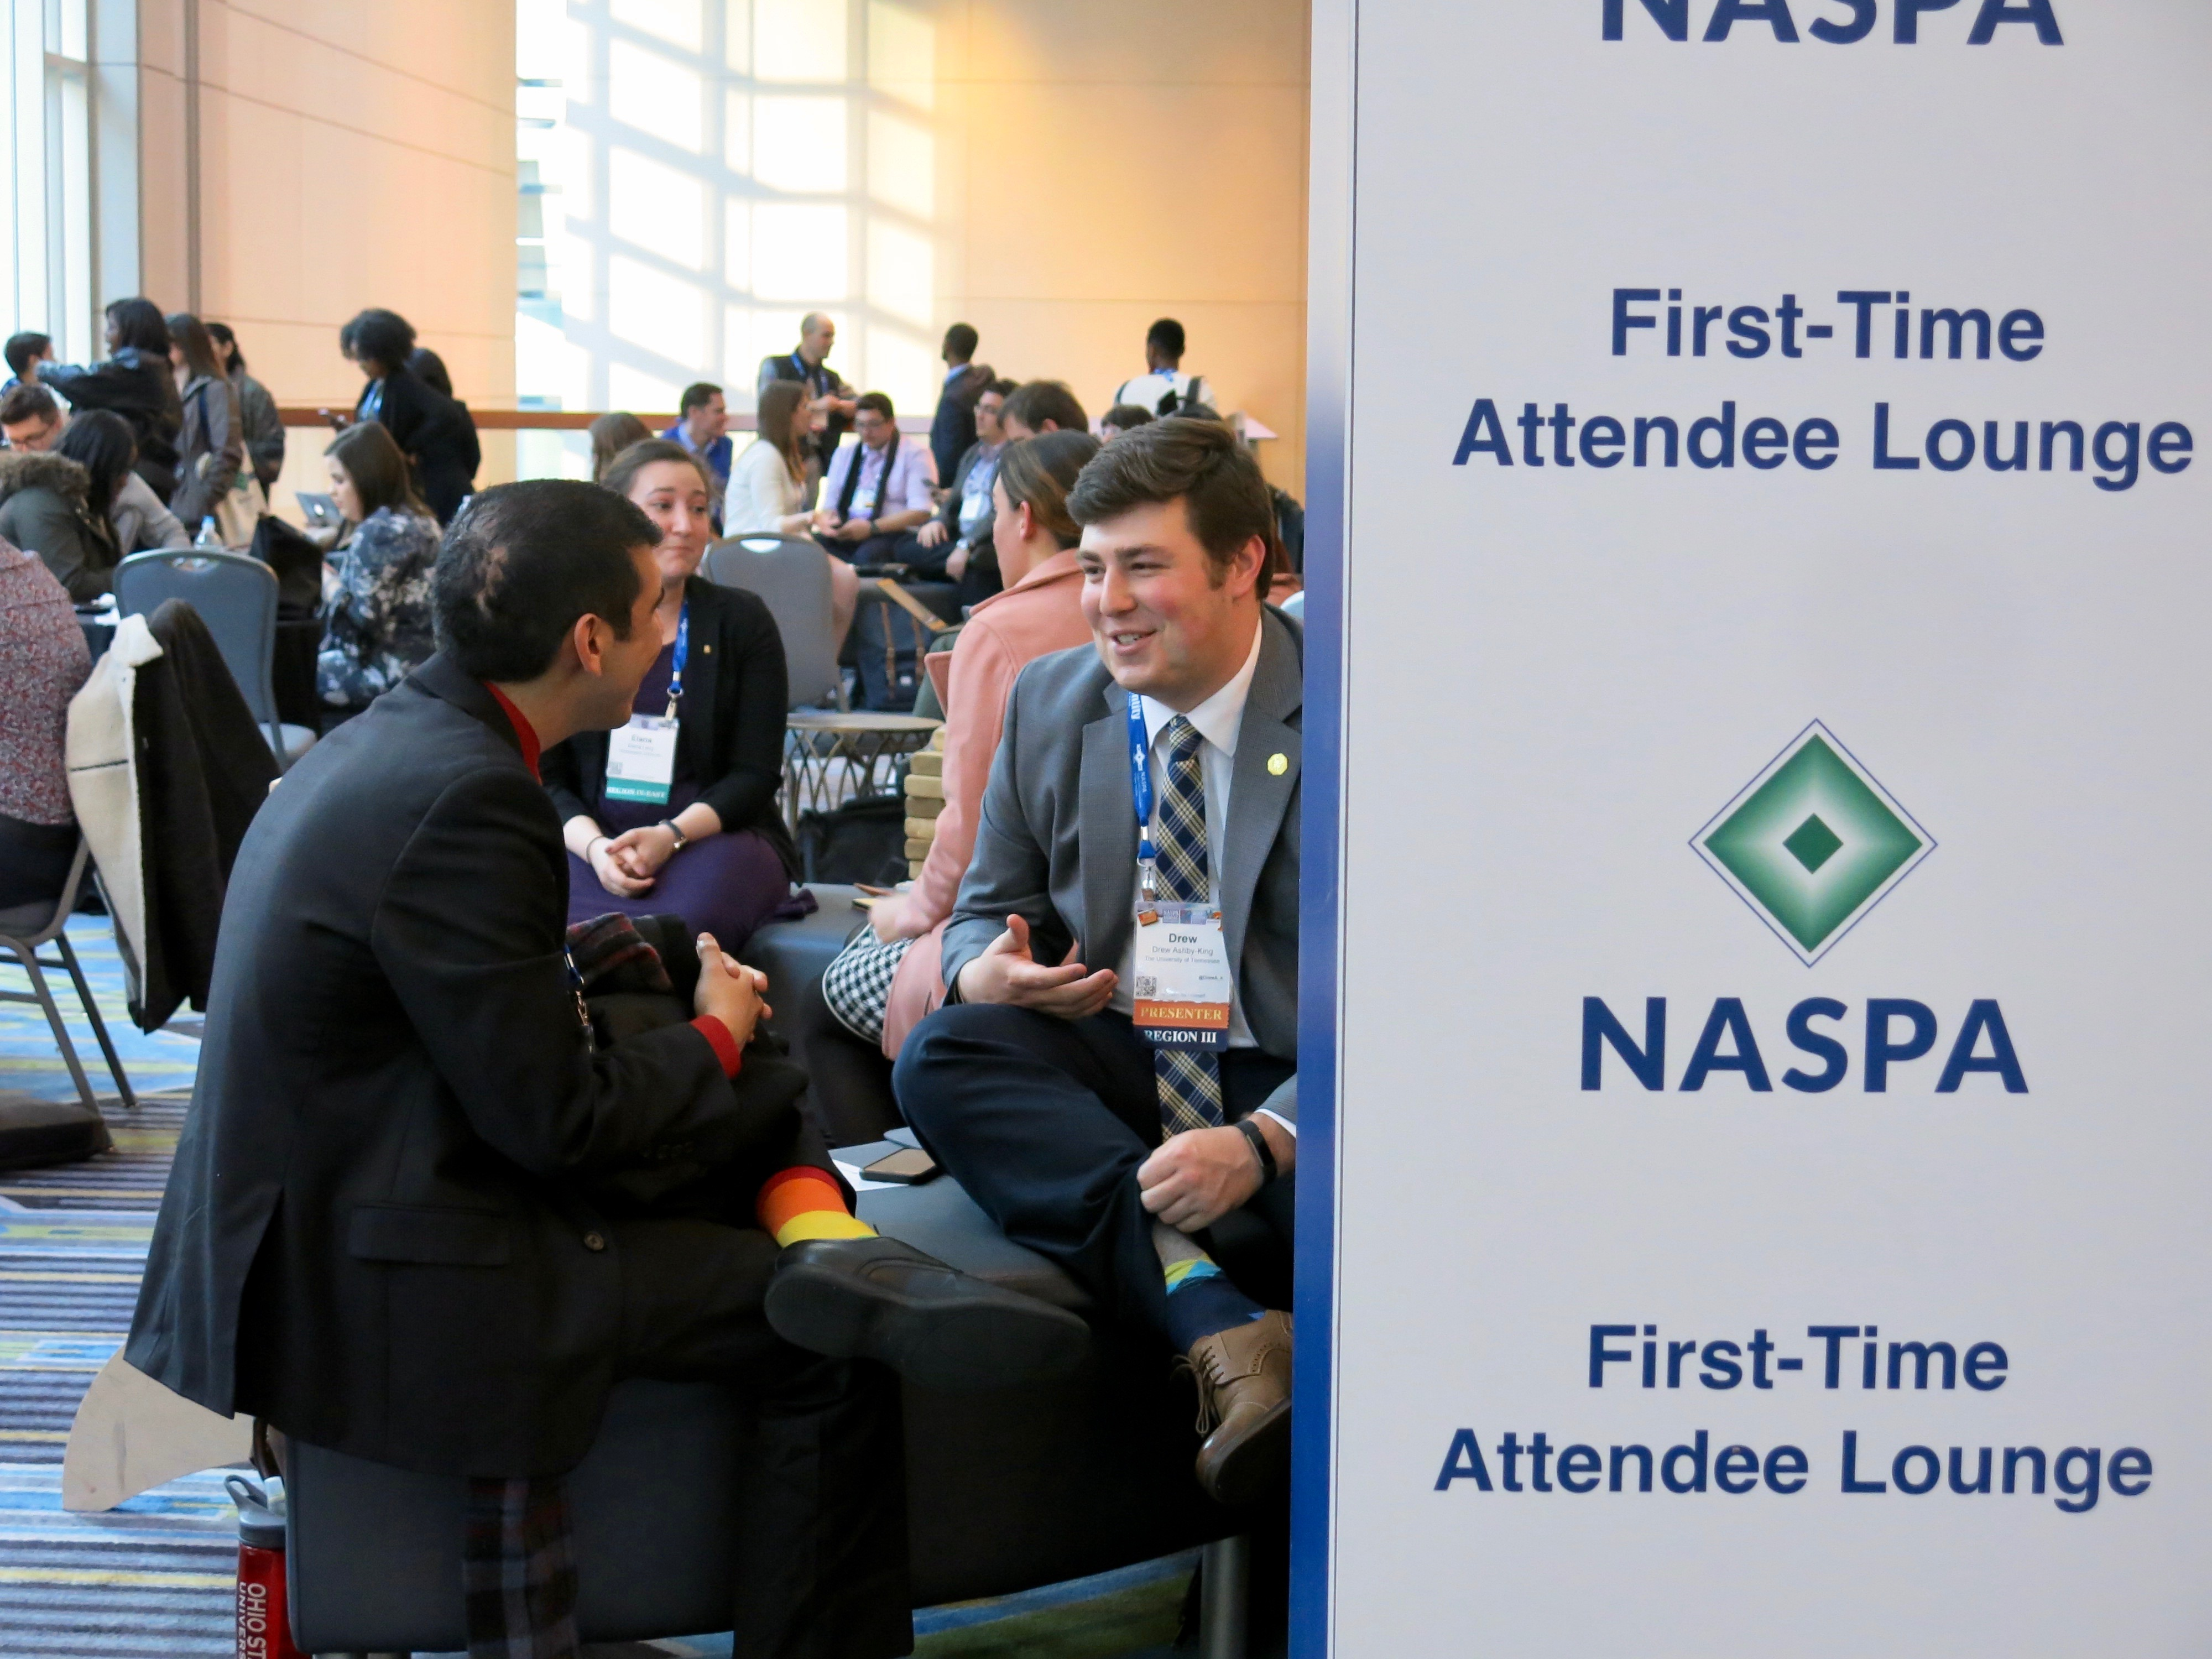 NASPA 2018. Philadelphia, USA; March 2018